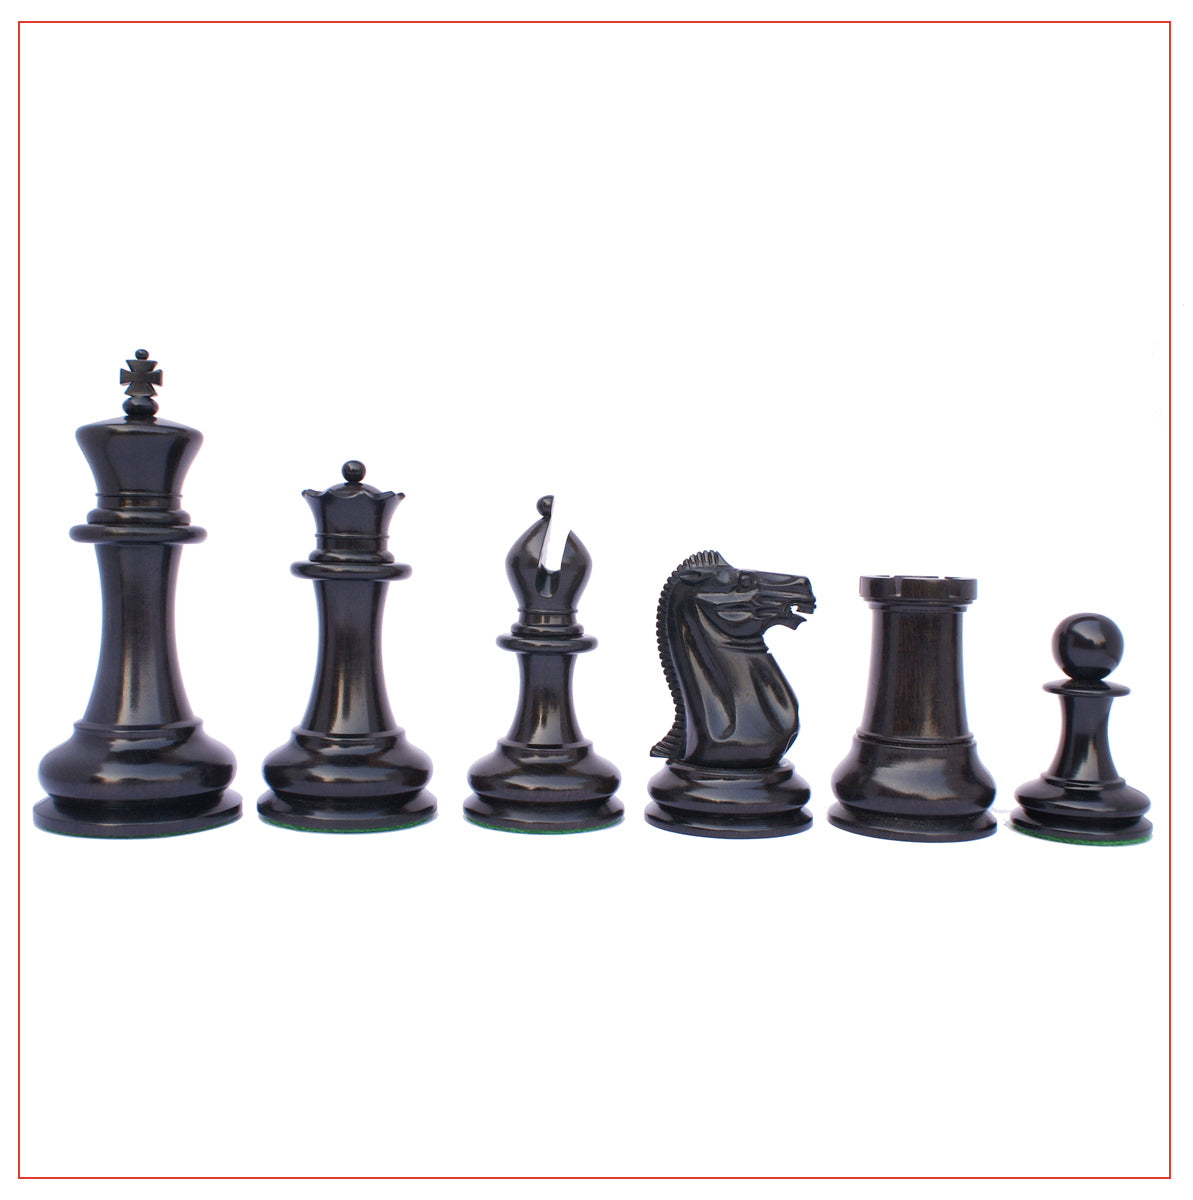 Jaques Reproduction Circa 1870-75 Staunton Chessmen With Presentation Box